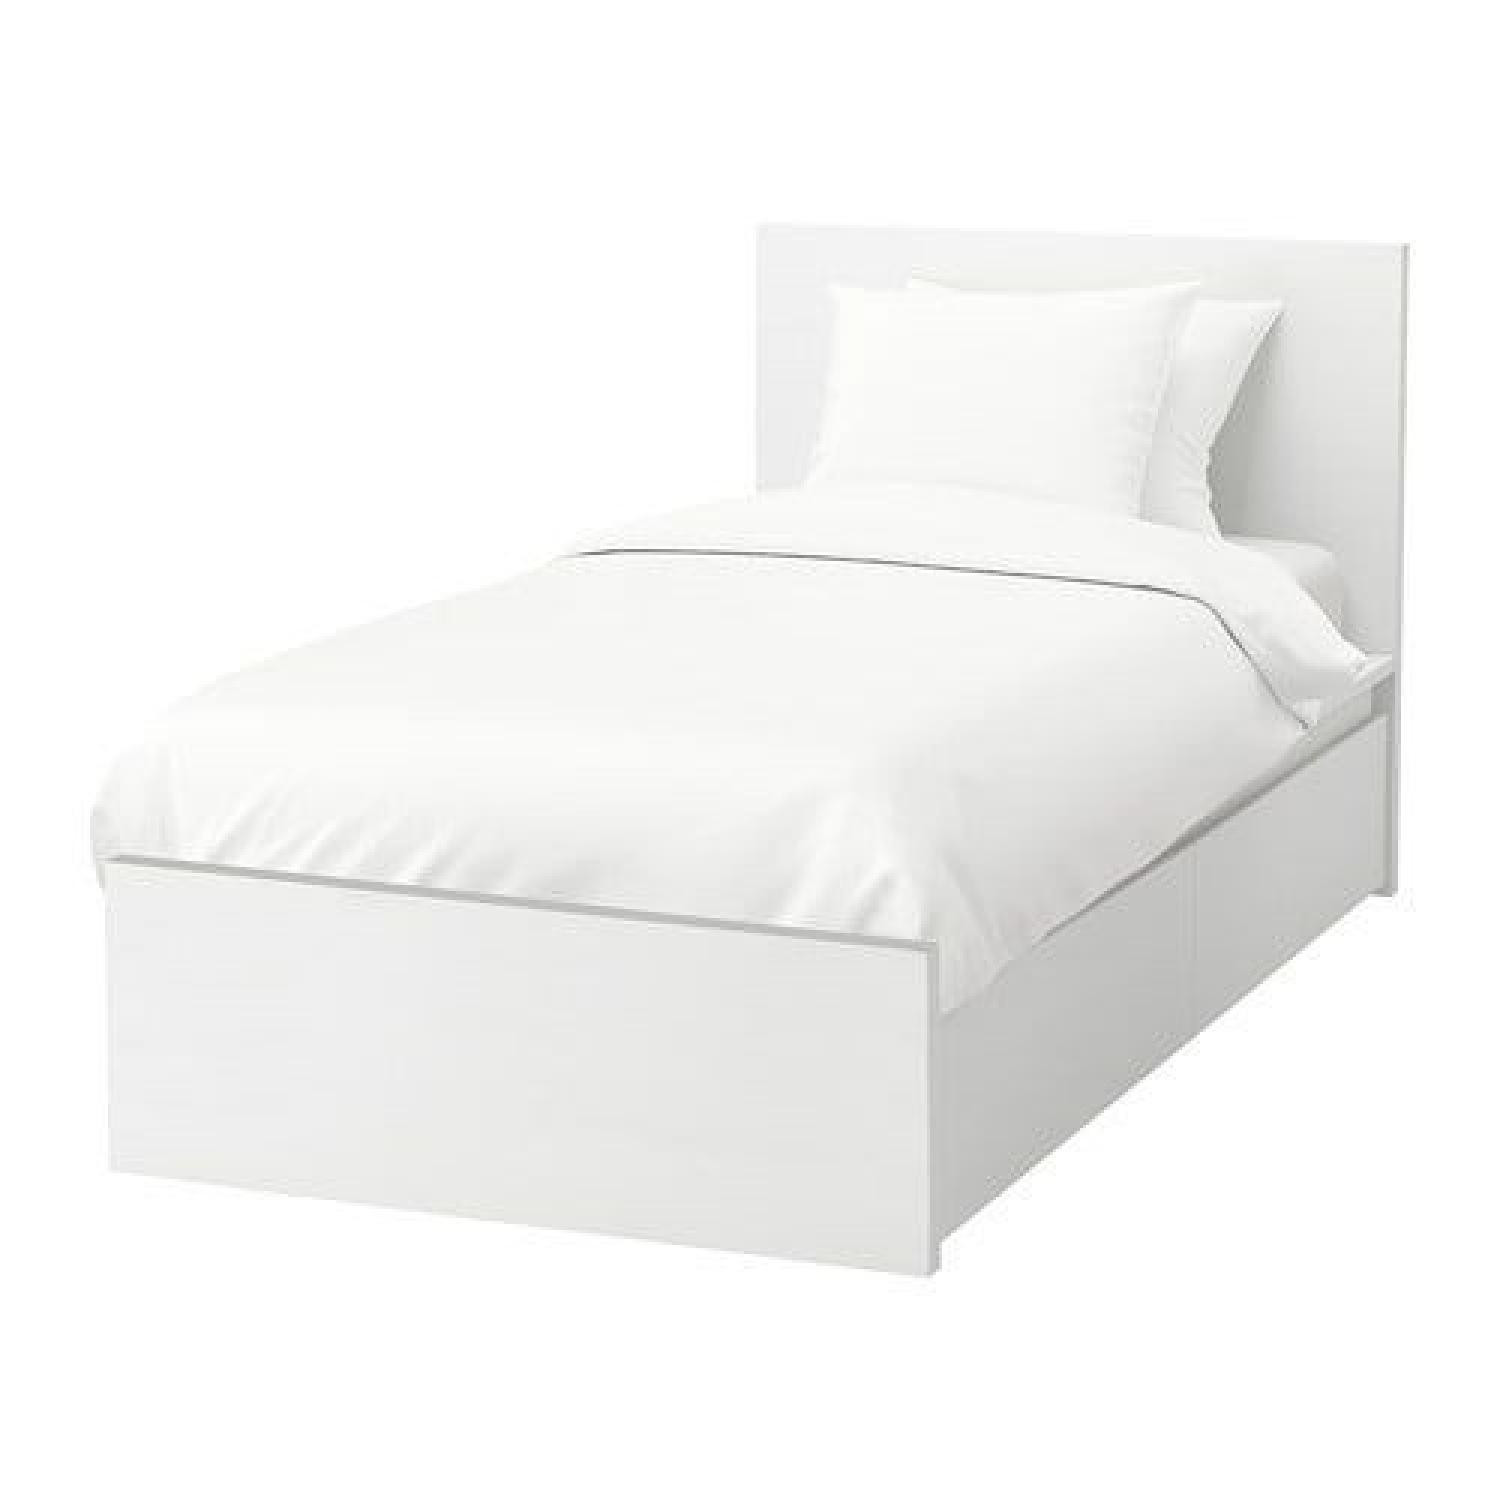 Ikea Malm Twin Storage Bed